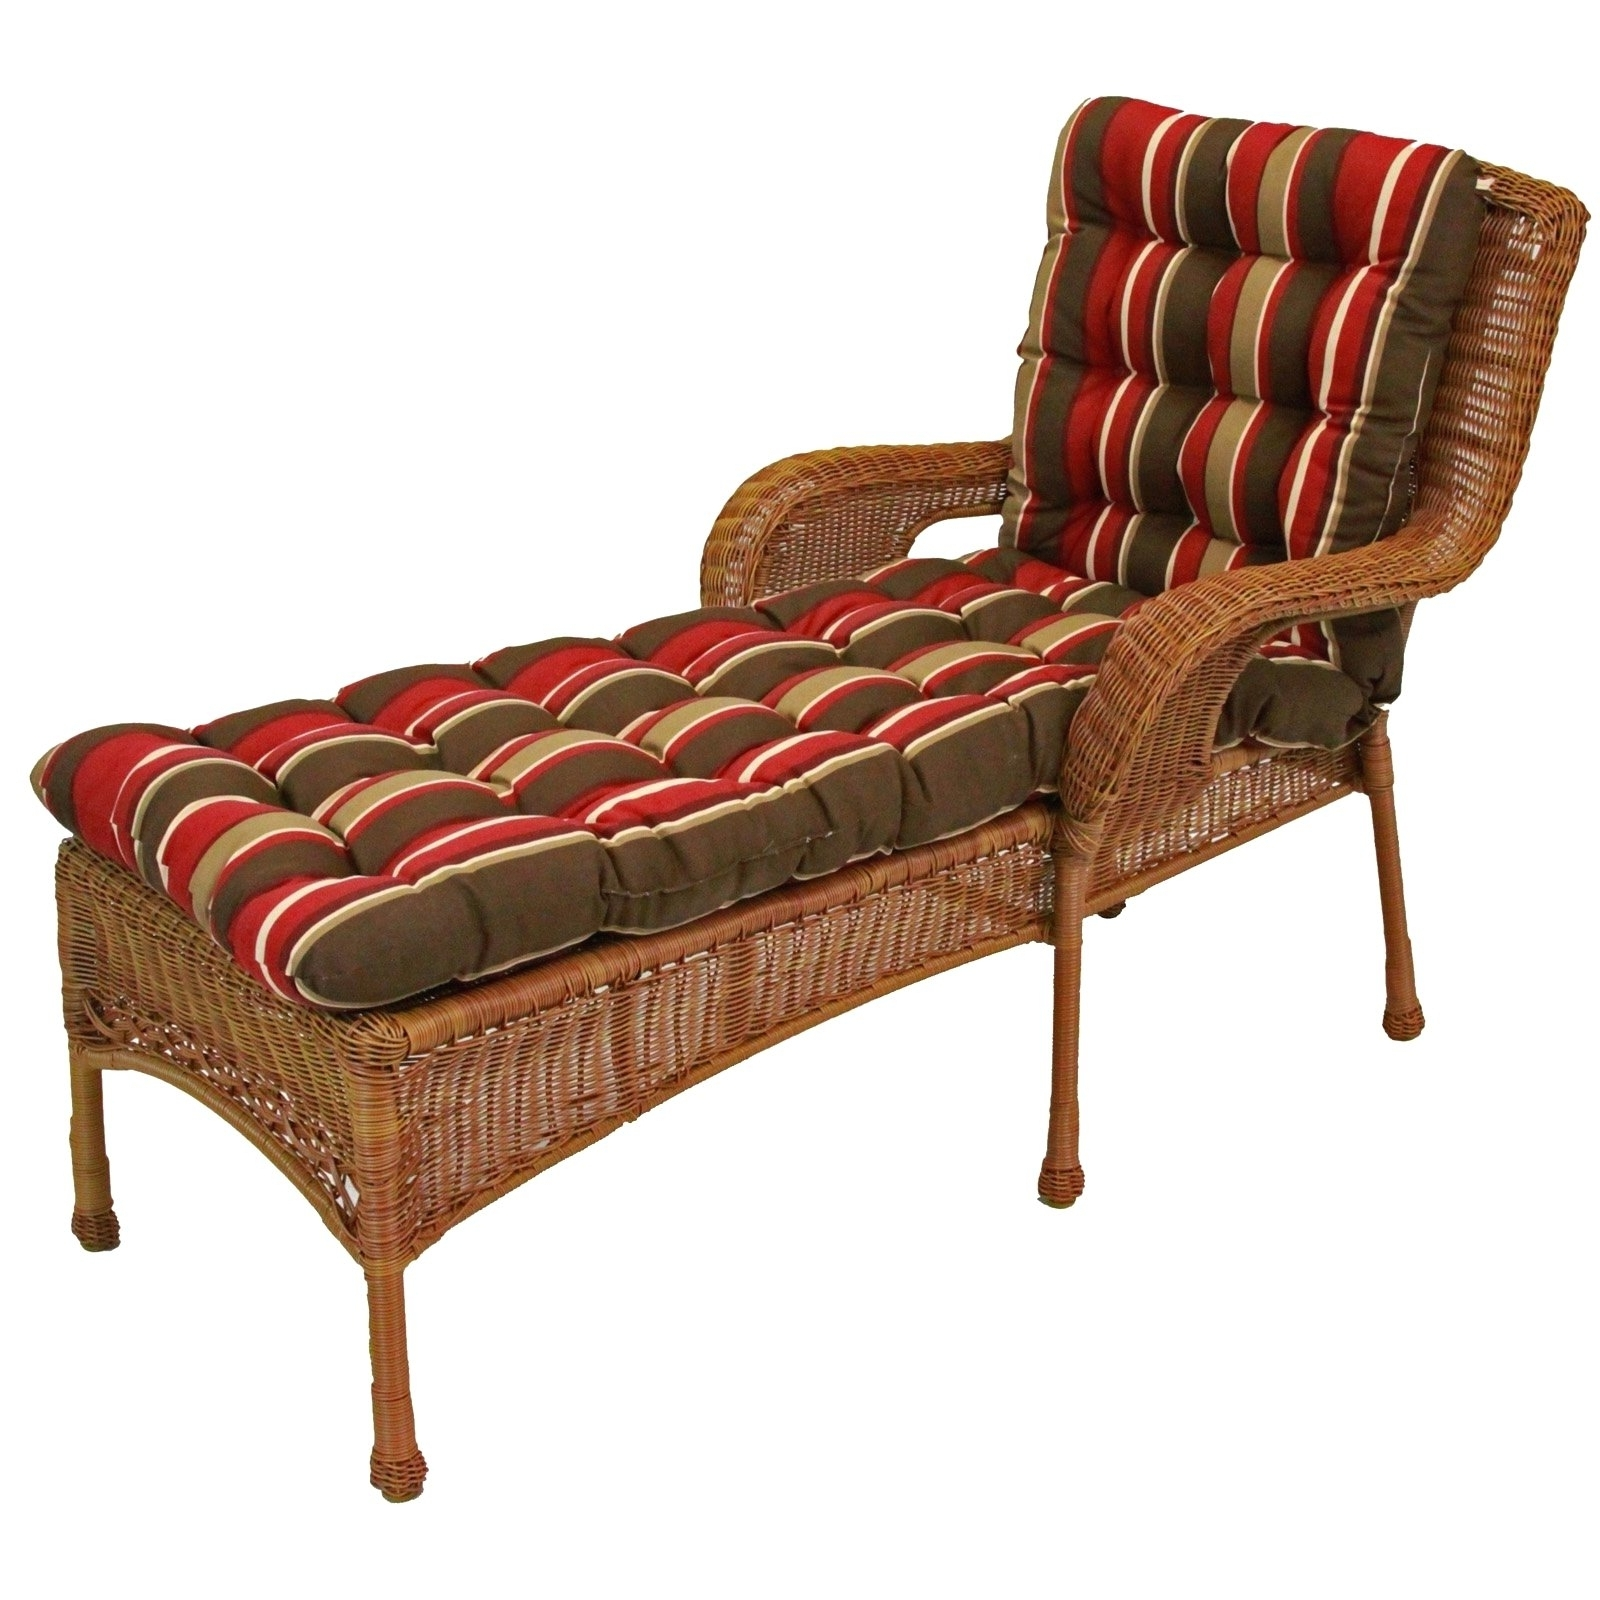 Rattan Chaise Lounge Chair Indoor • Lounge Chairs Ideas Intended For Well Known Keter Chaise Lounge Chairs (View 13 of 15)